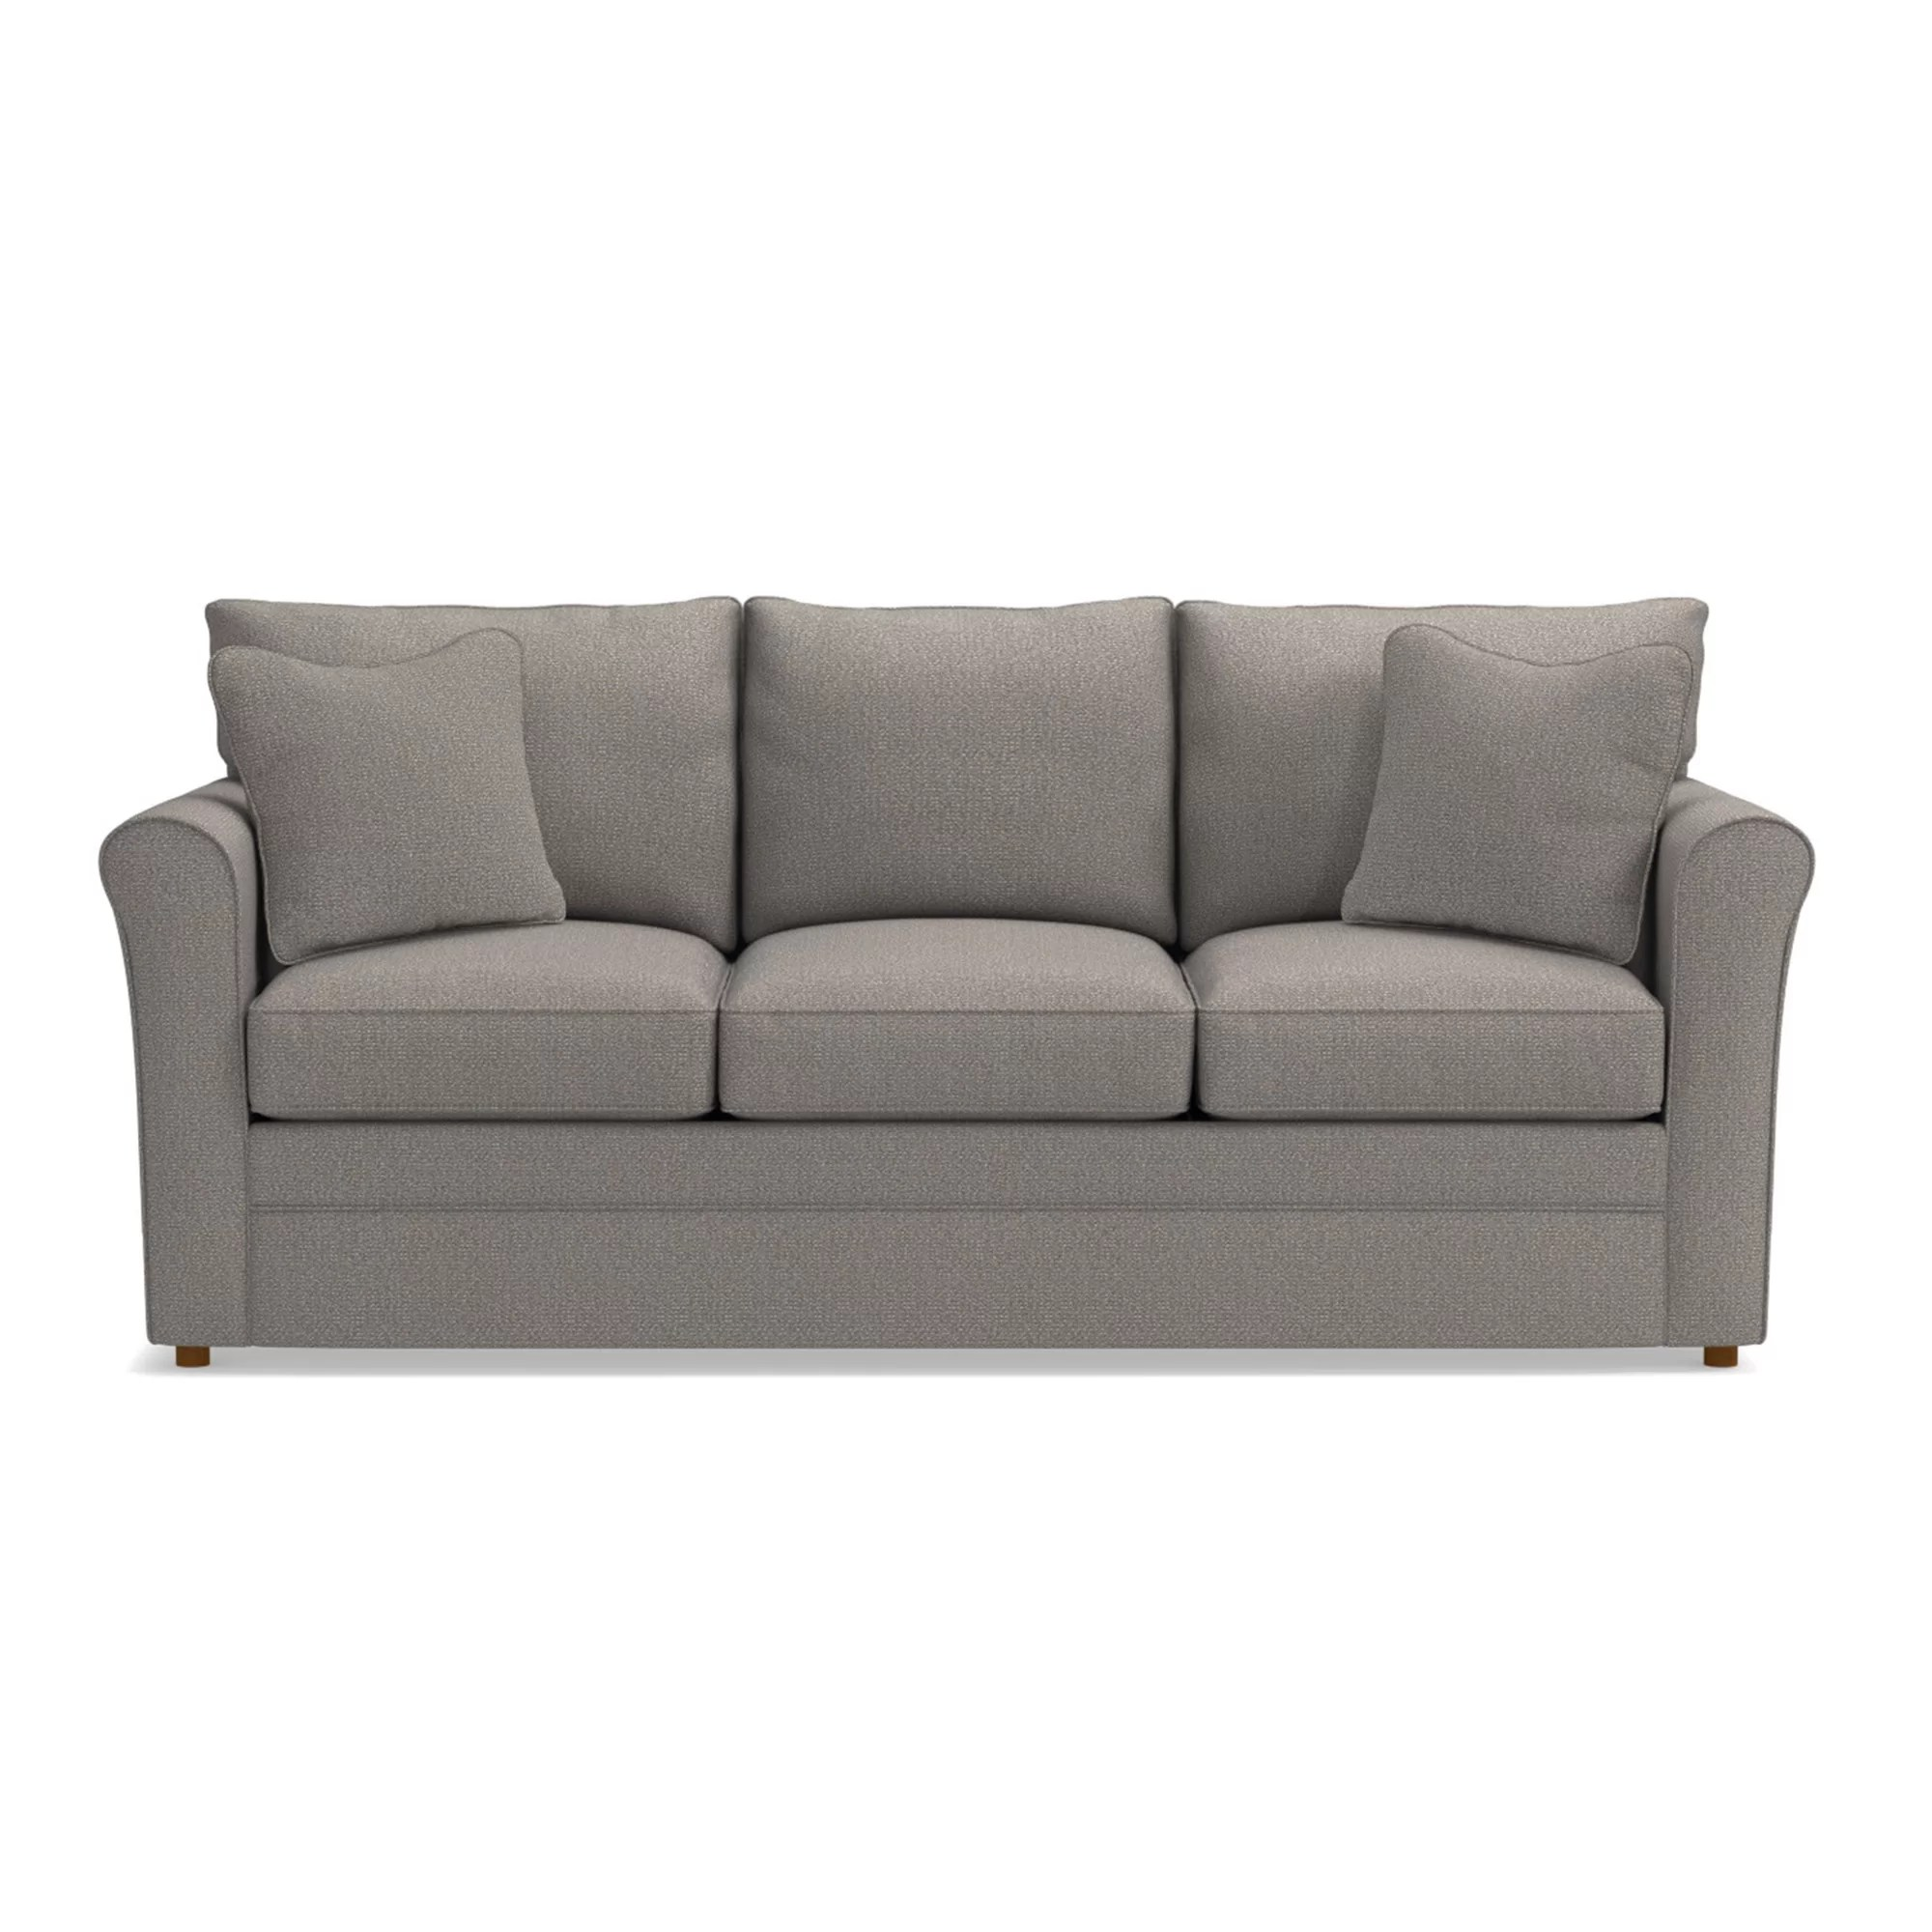 Wayfair Queen Sleeper Sofa Beds You Ll Love In 2021